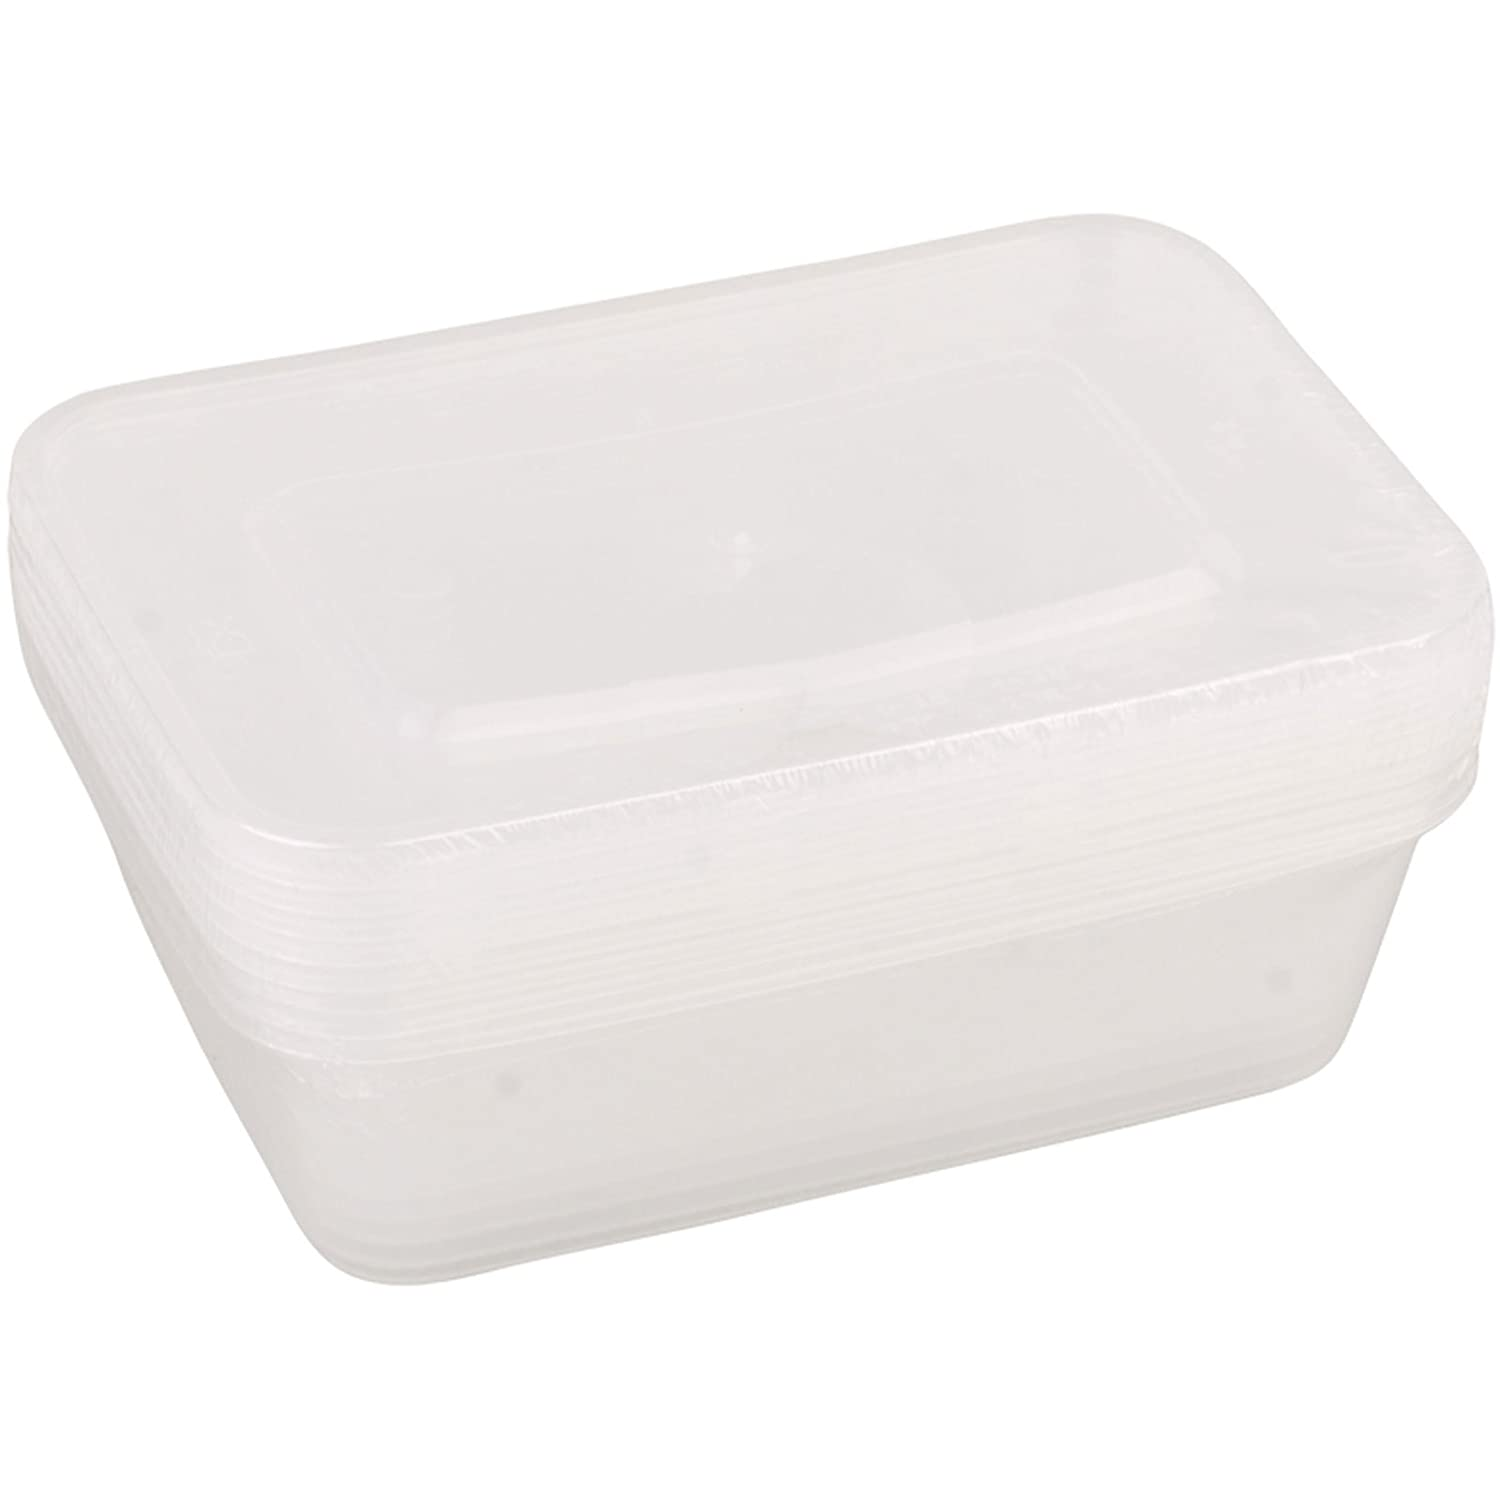 5 x Plastic 650ml Takeaway Microwave Freezer Safe Food Storage Container Tub Britwear